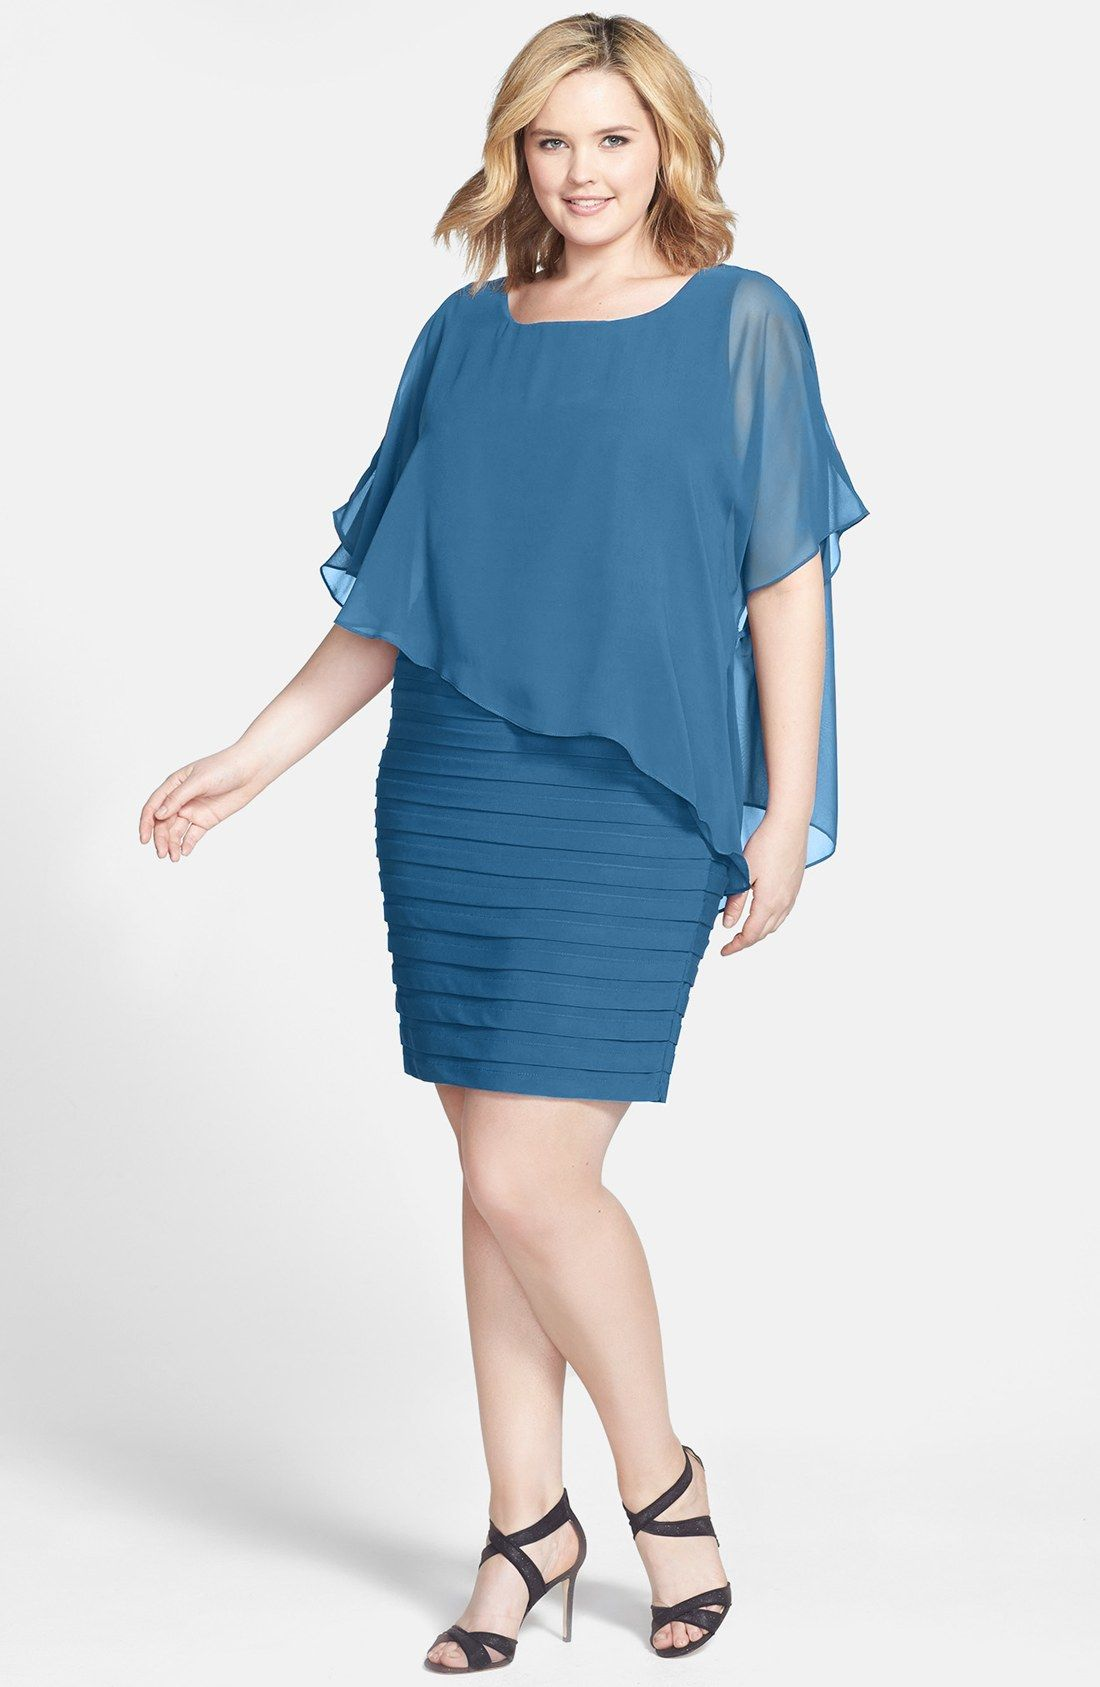 j thomson plus size dresses romans | Tenue africaine | Pinterest ...